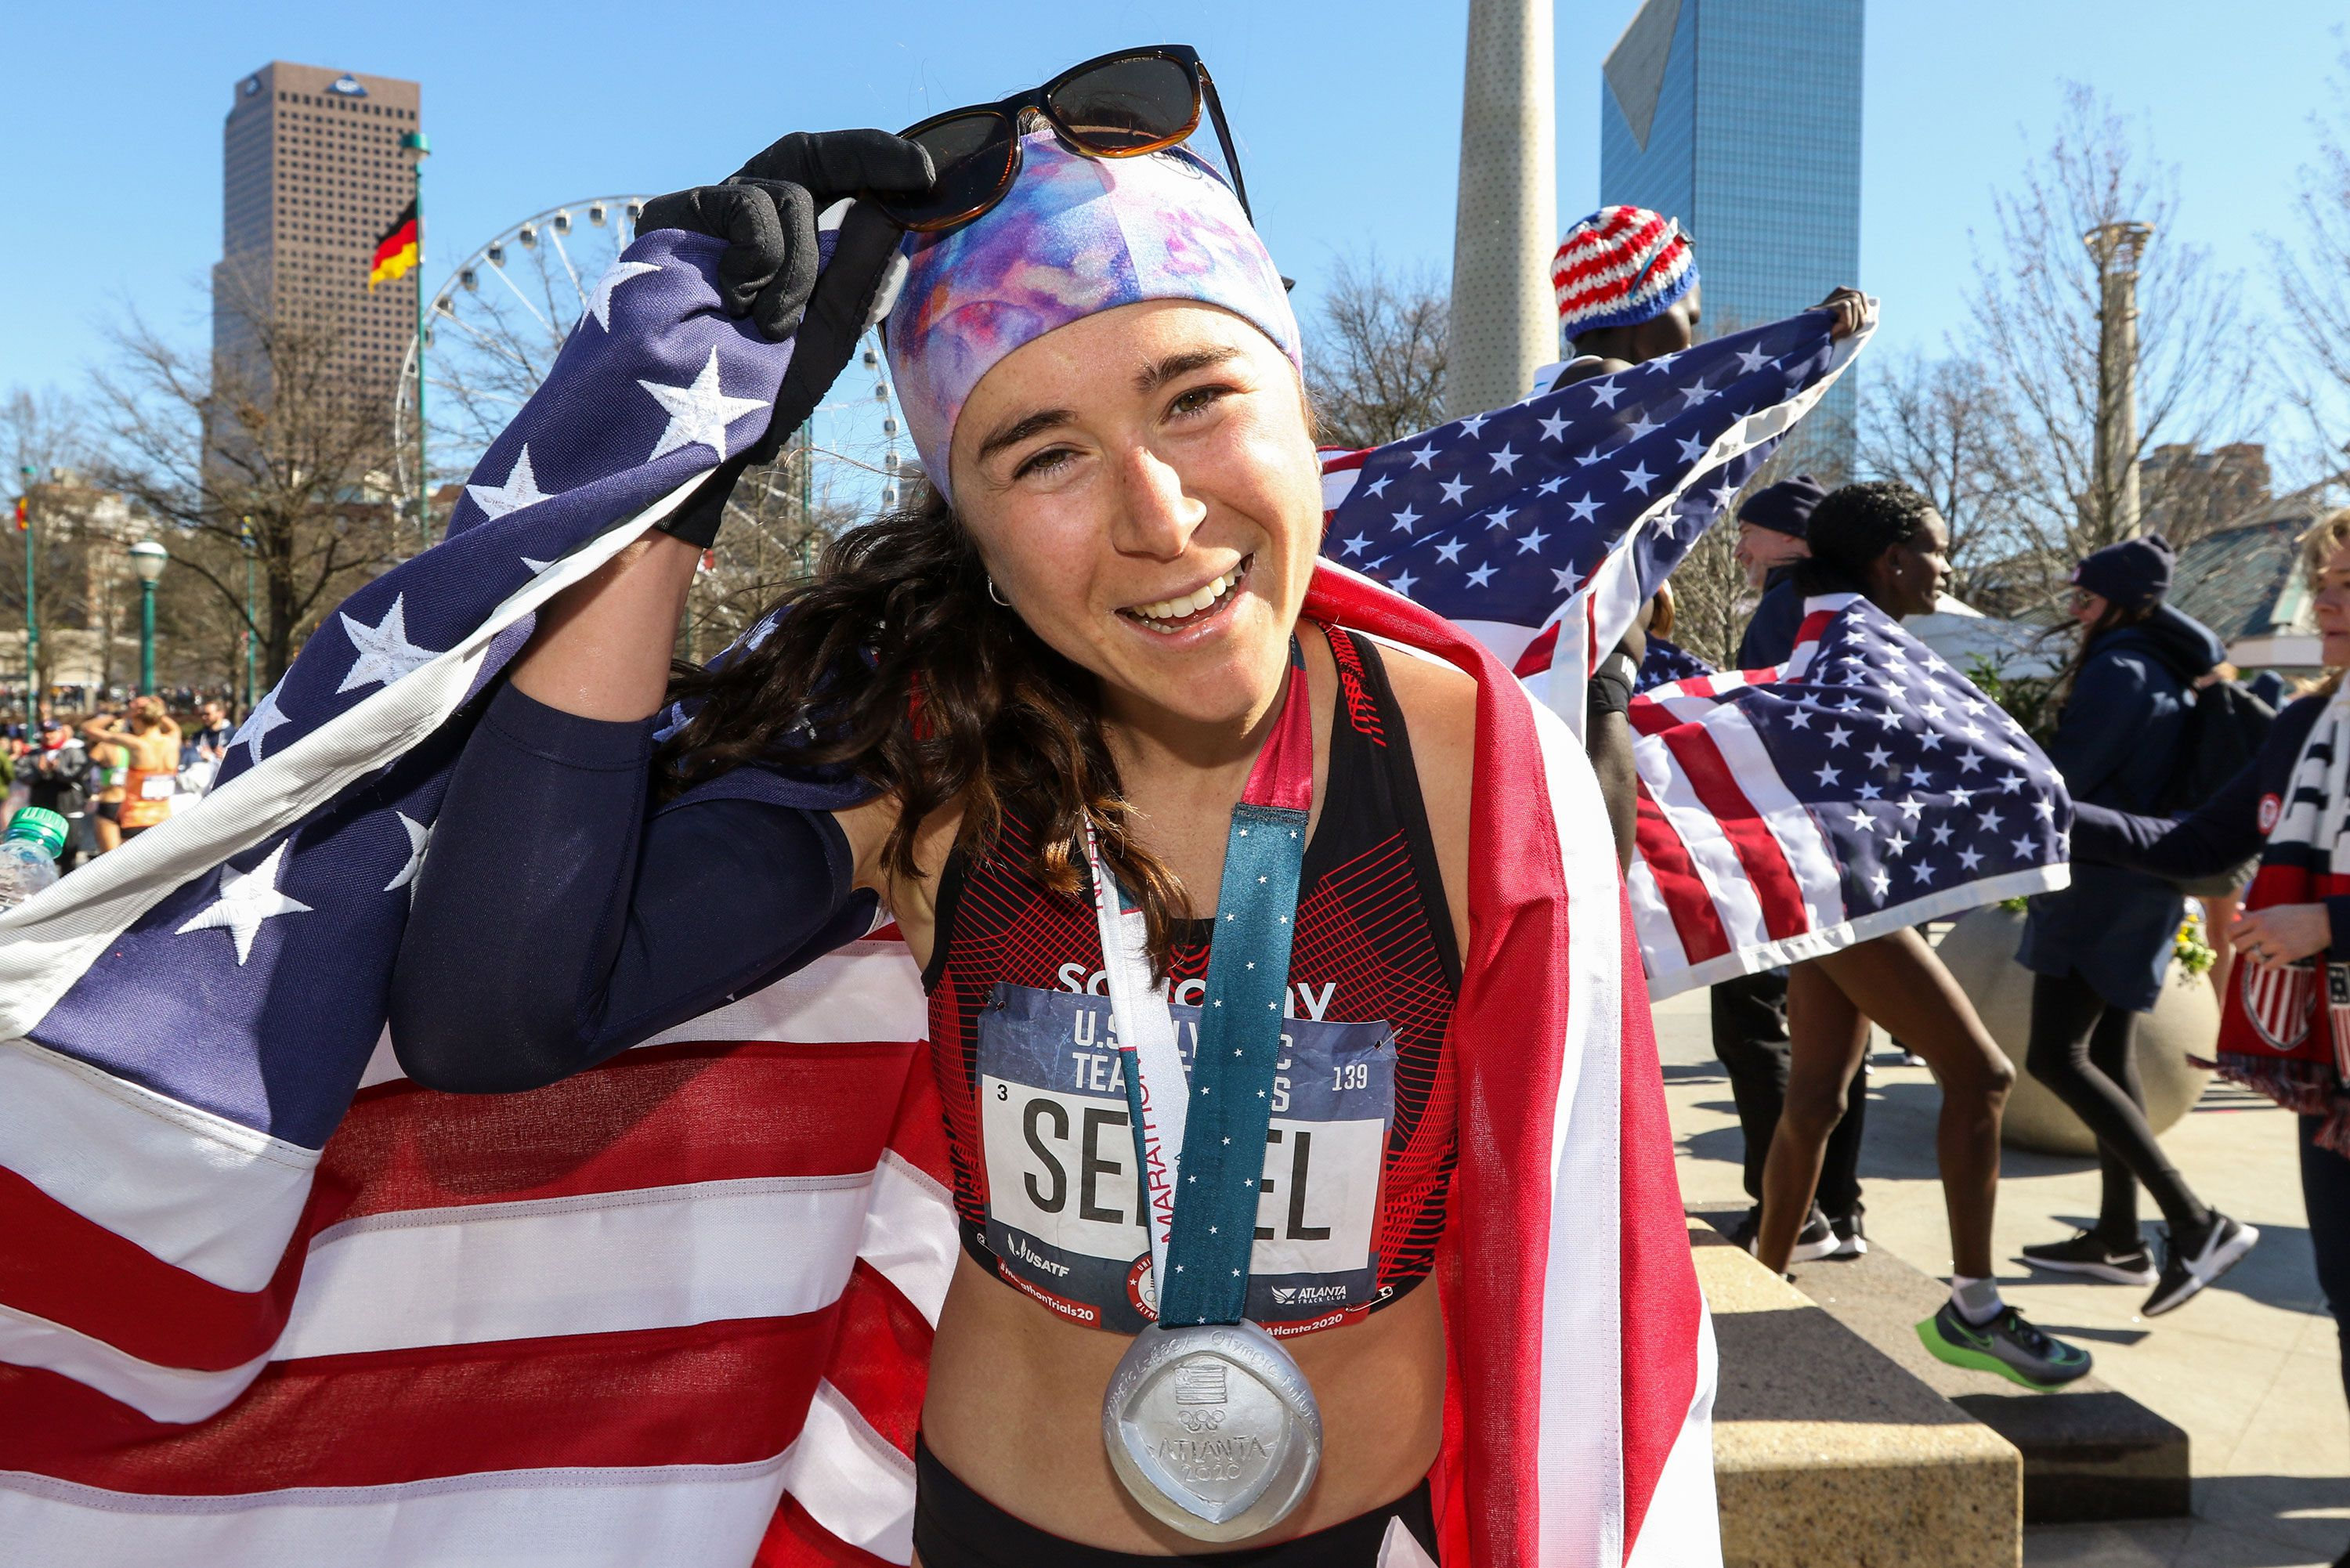 Molly Seidel - Comeback From Disordered Eating to Olympic Marathon Trials